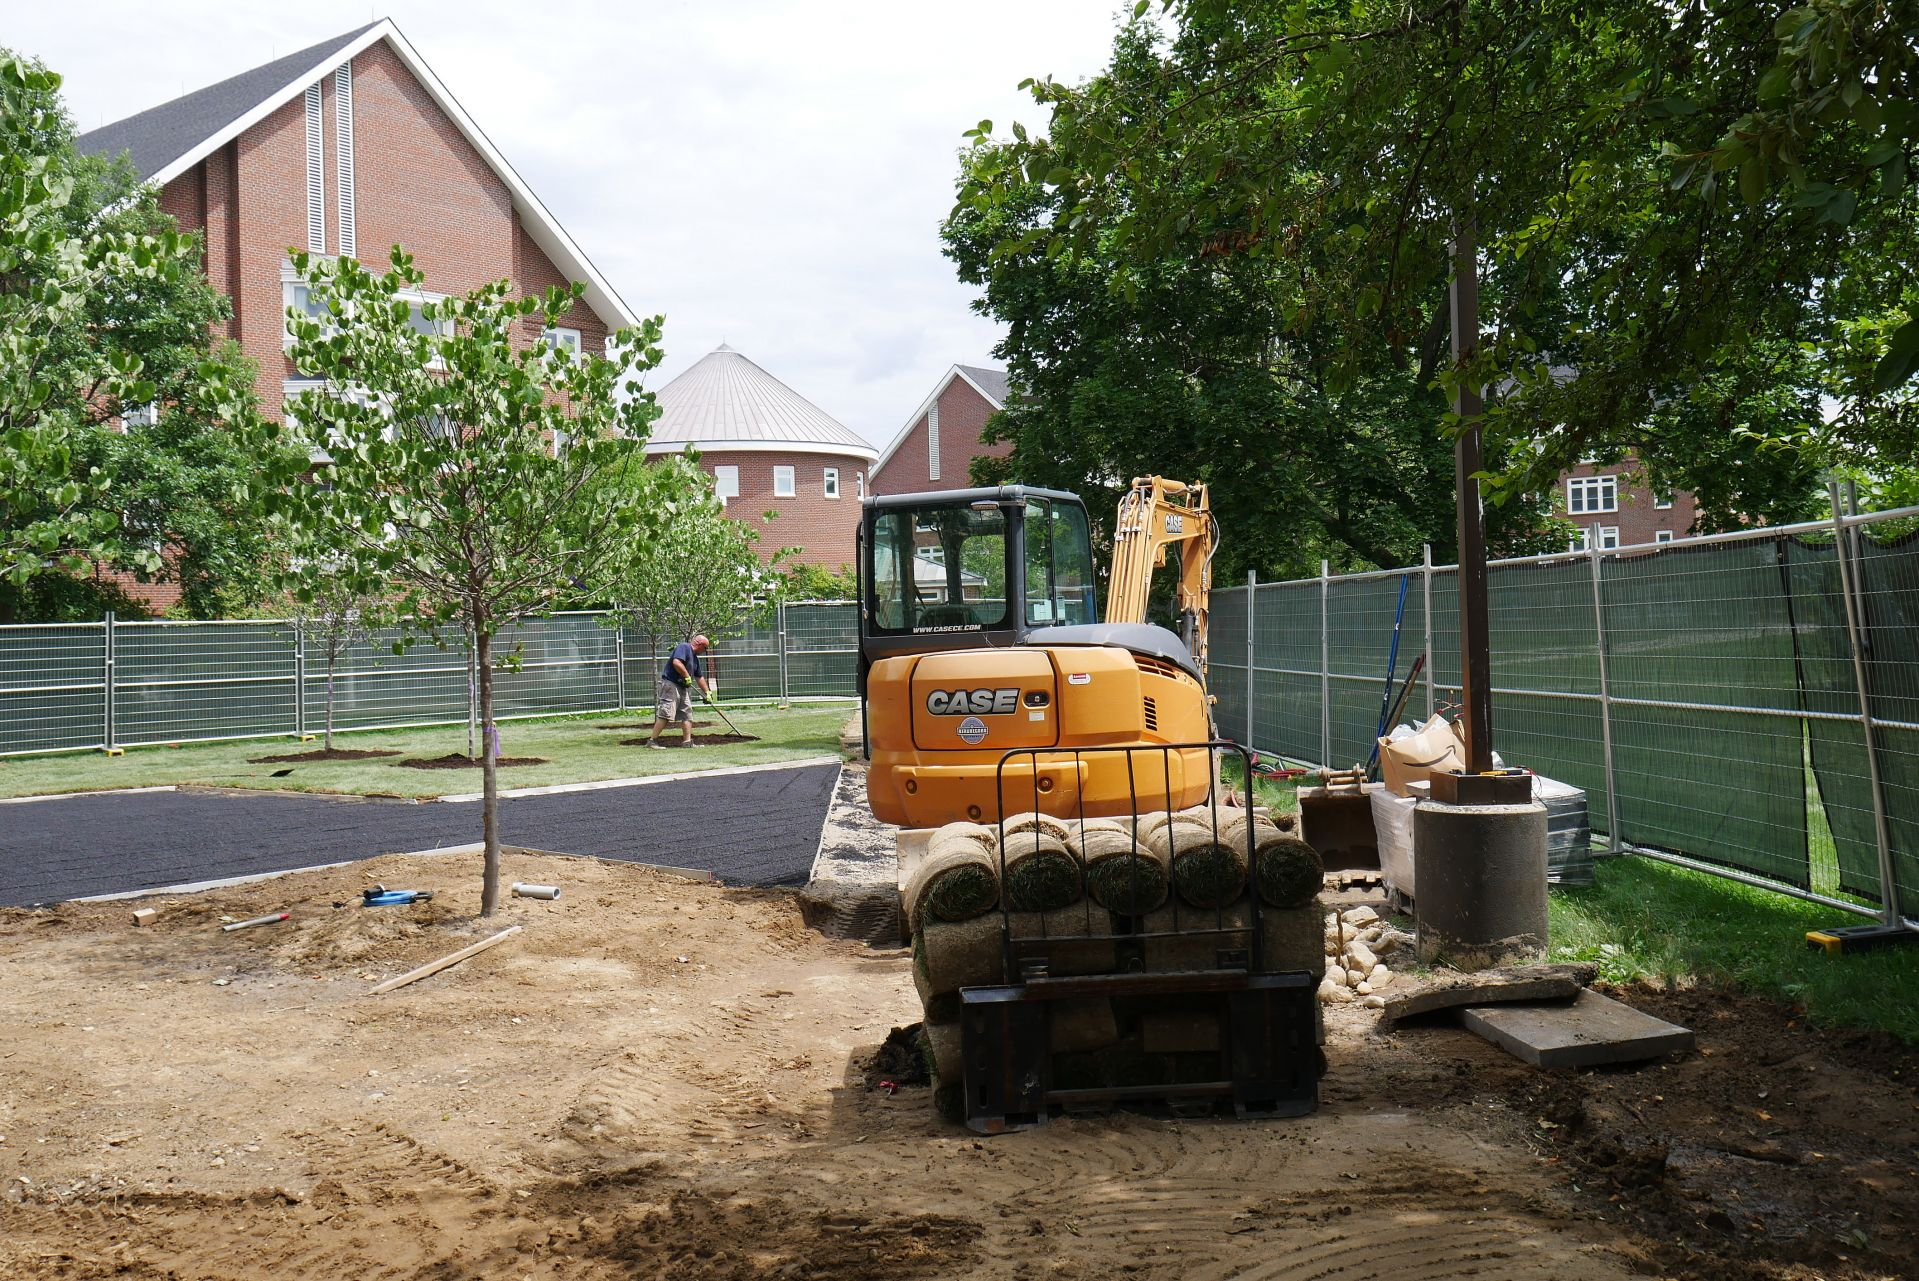 At work on the Veterans Plaza project on July 13. In the background is the Residential Village, and in the foreground is a load of sod rolls. (Doug Hubley/Bates College)